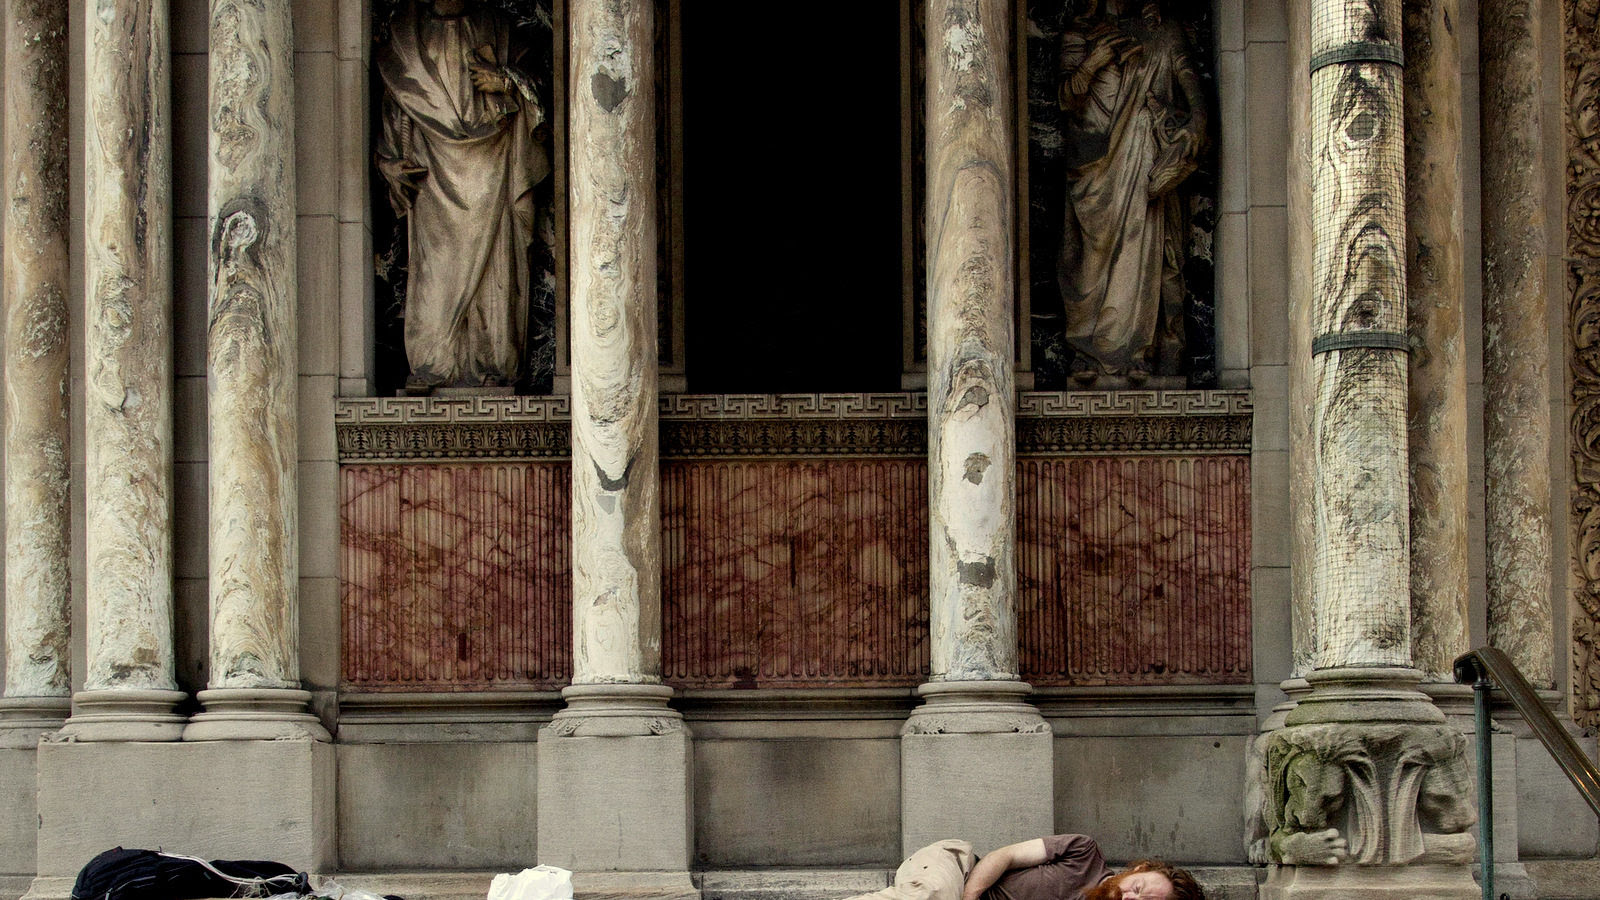 A Homeless man sleeps on the steps of St. Bartholomew's Church